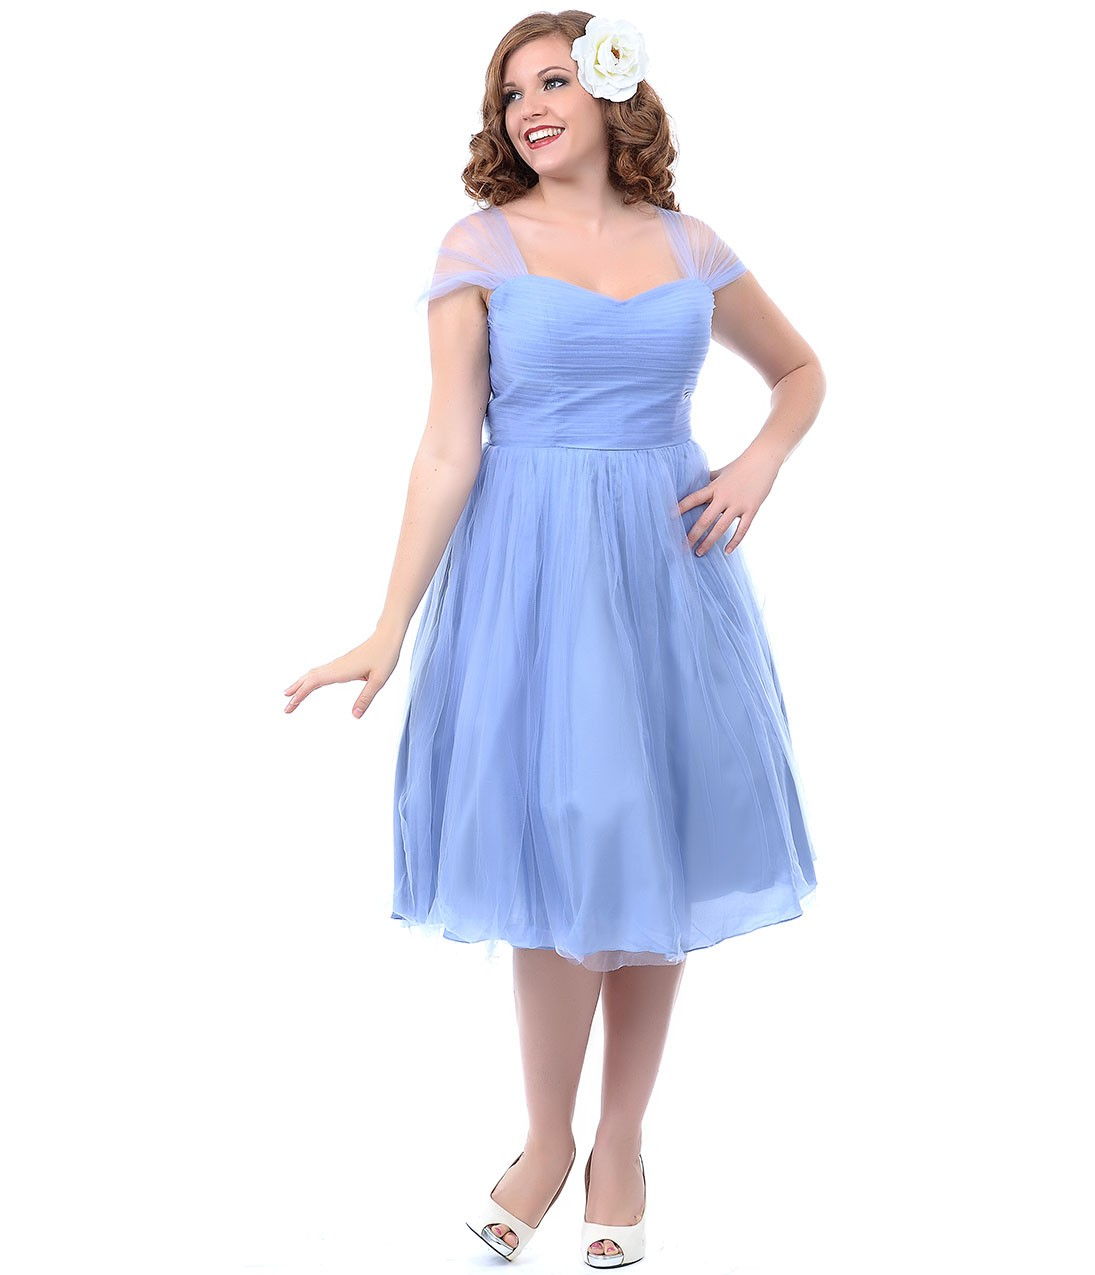 Brides guide to plus size bridesmaid dresses ombrellifo Gallery